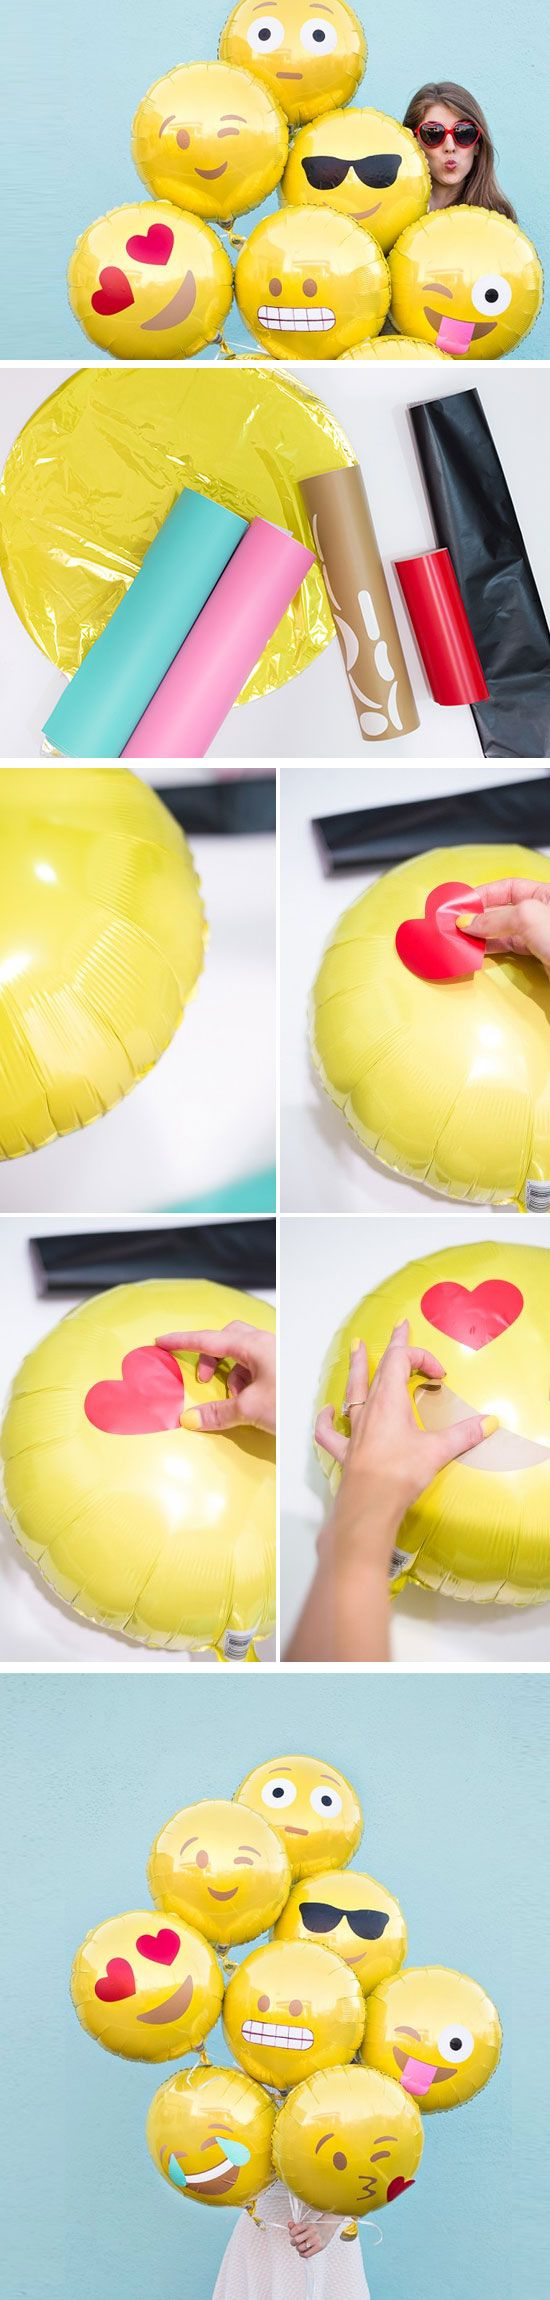 Emoji Balloons | Click Pick for 16 Awesome Sweet 16 Party Ideas for Girls | DIY Party Ideas for Teen Girls